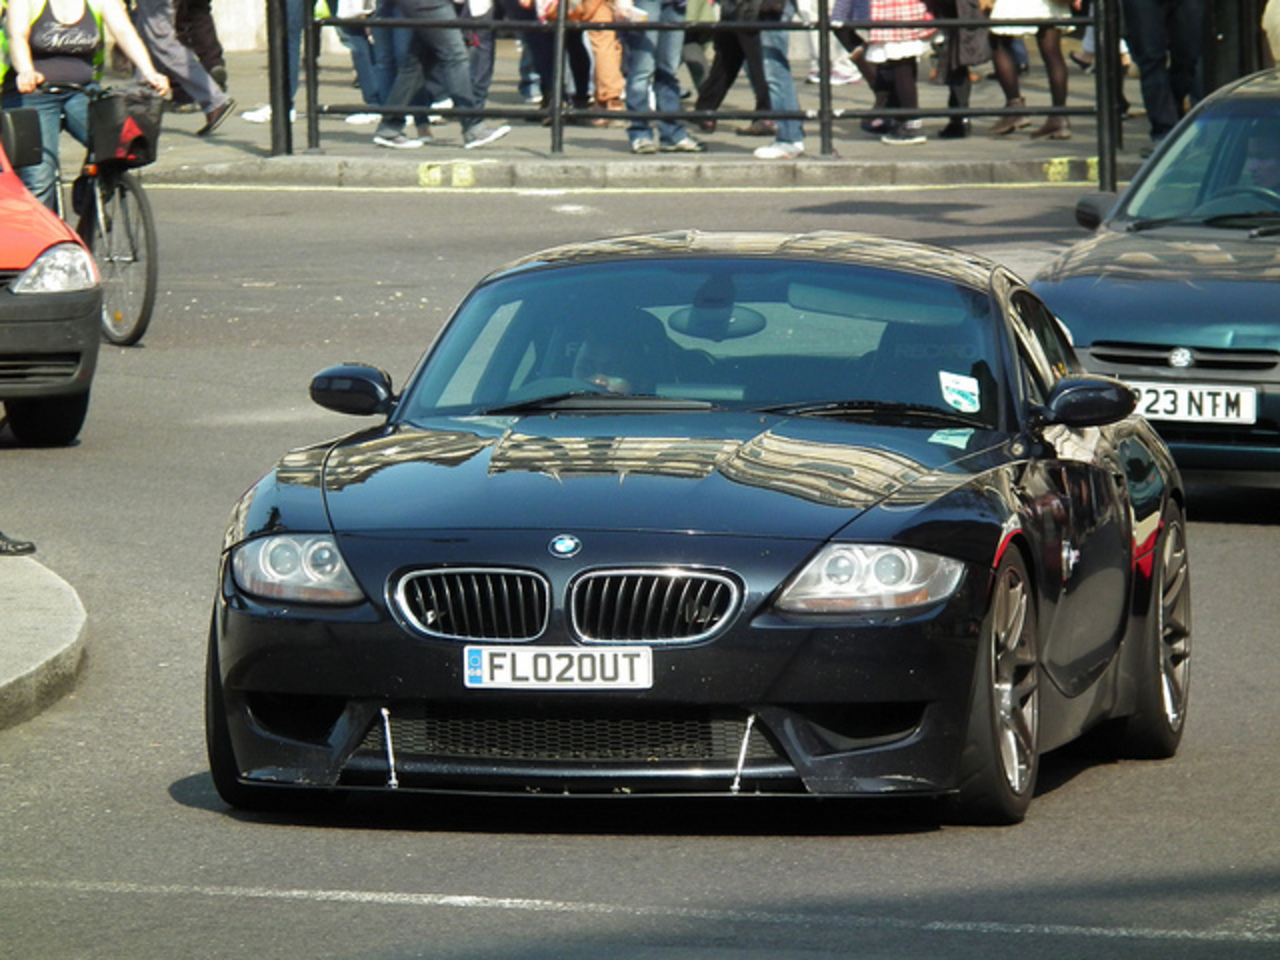 BMW Z4 M Coupé | Flickr - Photo Sharing!